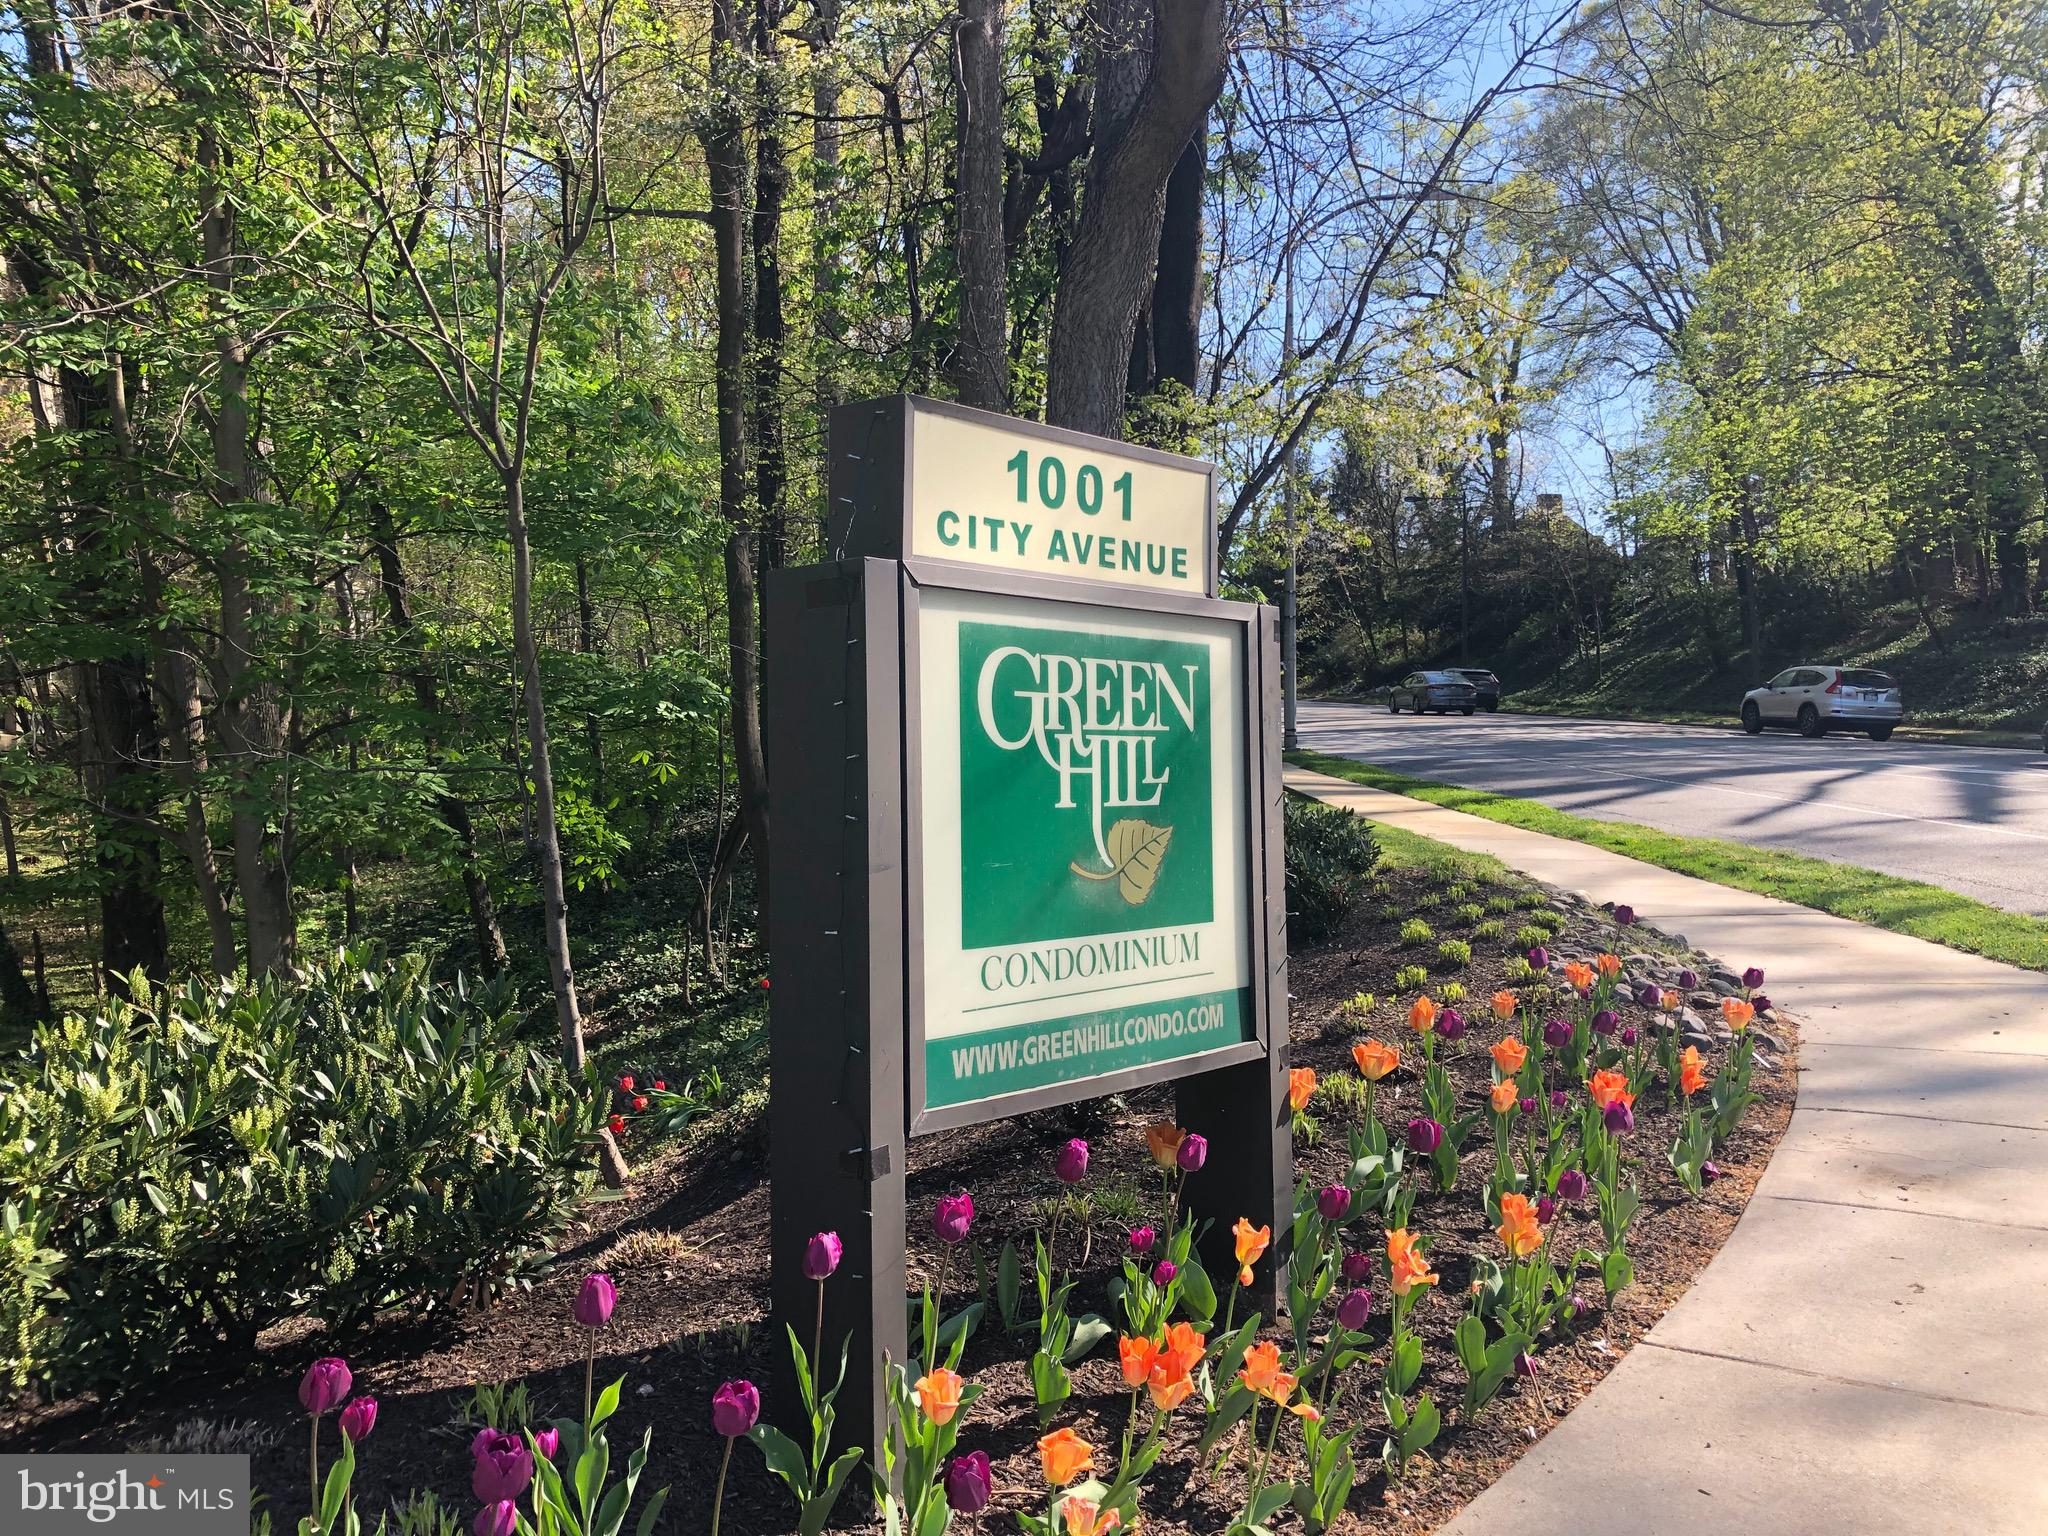 UPDATED AND LOVELY 2 BR, 2 BA UNIT IN THE GREEHHILL CONDO, A PREMIER LIVING EXPERIENCE ON THE MAIN LINE, JUST OUTSIDE THE CITY OF PHILADELPHIA, IN THE COVETED LOWER MERION TOWNSHIP. THIS UNIT HAS BEEN UPDATED AND CARED FOR BY THE CURRENT OWNERS DURING THE PAST 10 YEARS. NEWER KITCHEN AND BATHS, BEAUTIFUL HARDWOOD FLOORING EVERYWHERE EXCEPT MASTER BEDROOM, WHICH HAS FRESHLY CLEANED NEUTRAL CARPET. THE WALL HAS BEEN TAKEN DOWN BETWEEN THE KITCHEN AND DINING ROOM, OFFERING A SPACIOUS AND OPEN FEELING. NEWER APPLIANCES. WINDOW TREATMENTS ALL REMAIN, AS WELL AS THE BEAUTIFUL DINING ROOM CHANDELIER. THE SECOND BEDROOM WHICH HAS POCET DOORS FOR PRIVACY CAN BE USED AS A DEN OR OFFICE AS WELL AS A BEDROOM. ABUNDANT CLOSETS AND BASEMENT STORAGE LOCKER. THE GREENHILL OFFERS AMENITIES FOR A FEE SUCH AS A BEAUTIFUL OUTDOOR POOL AND HEALTH CLUB. INDOOR PARKING AVAILABLE FOR A FEE. FULL 24 HOUR  SECURITY AND A SECURITY GATE OFFERS COMPLETE PRIVACY TO RESIDENTS. CONDO FEE MONTHLY IS $872.  2 MONTHS CONDO FEE PAYABLE AT CLOSING. THERE IS A SPECIAL ASSESSMENT OF $1021.25 PAYABLE IN 3 INSTALLMENTS-JUNE ,JULY AND AUGUST, $340.42 PER MONTH MOVE IN FEE: $500 (REFUNDABLE), ELEVATOR FEE: $150 (NON REFUNDABLE)